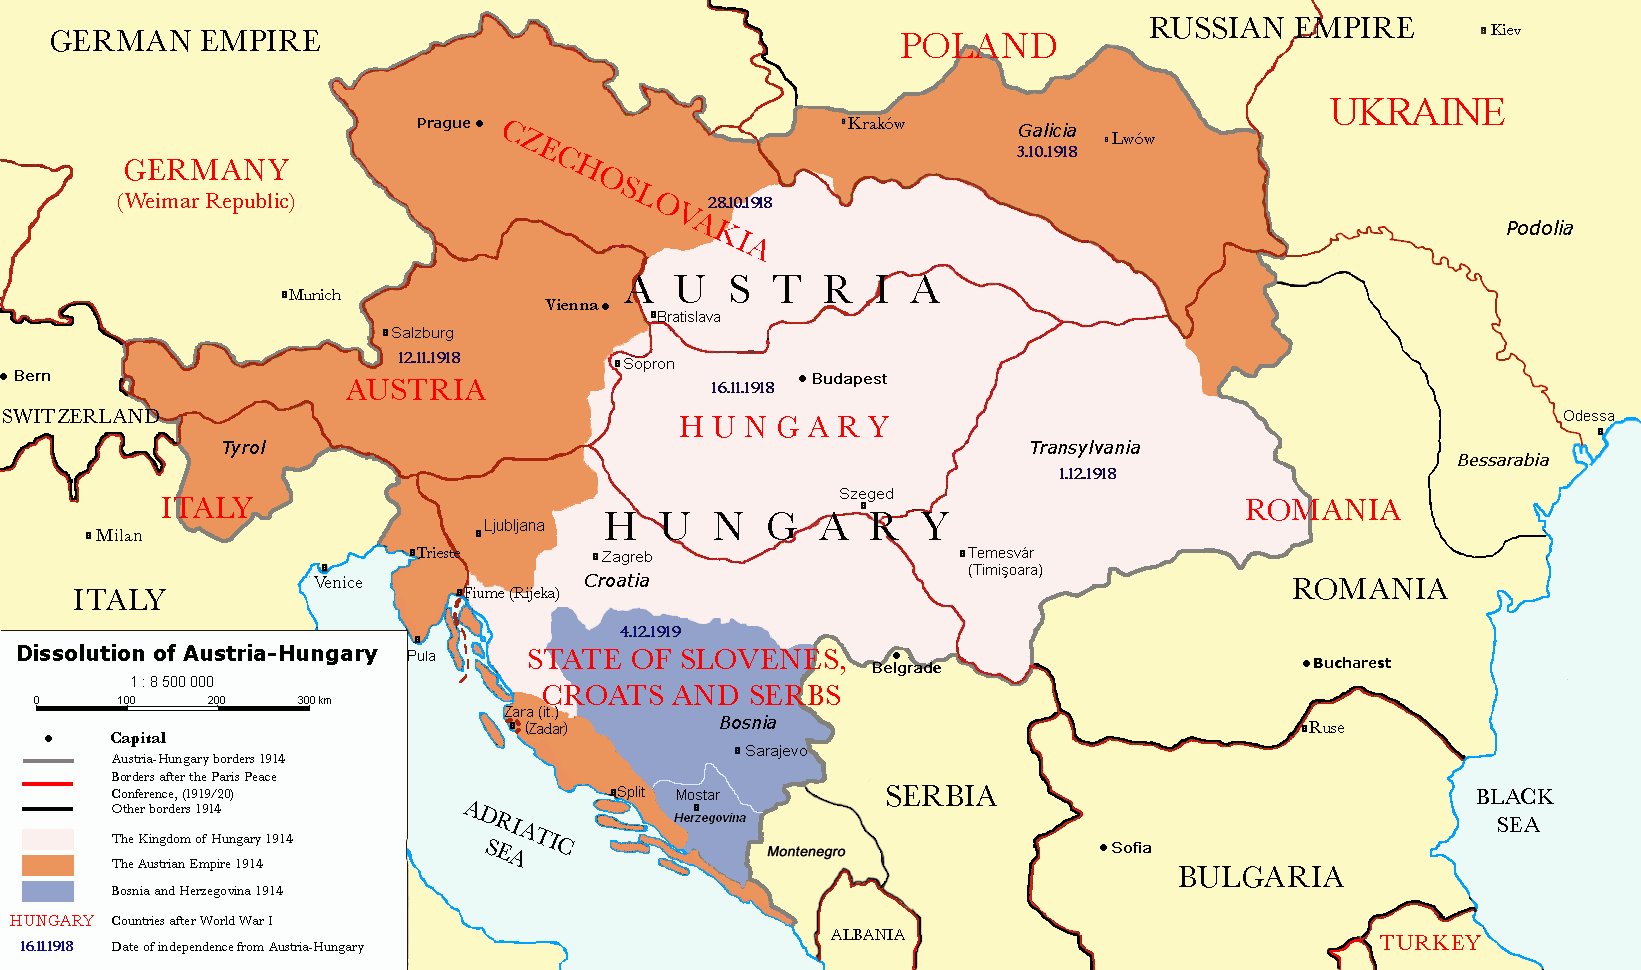 https://i2.wp.com/upload.wikimedia.org/wikipedia/commons/5/50/Dissolution_of_Austria-Hungary.png